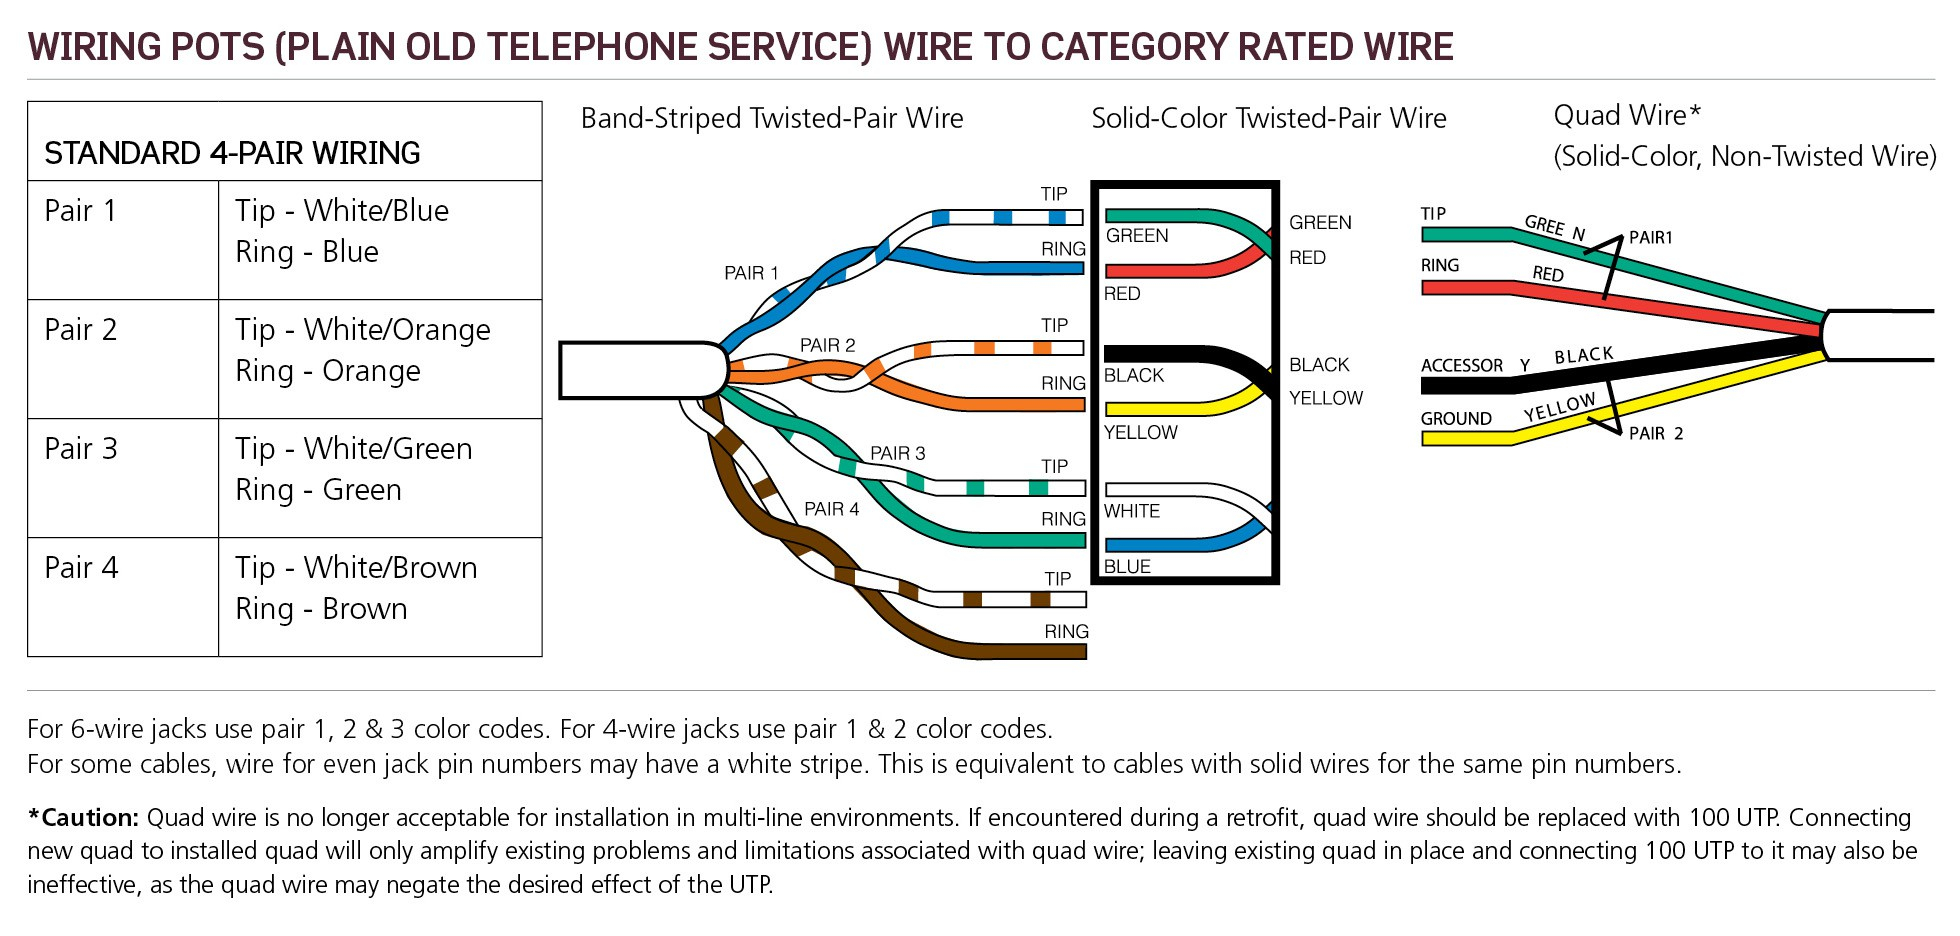 cat5 dsl wiring diagram collection wiring diagram sample rh faceitsalon com DSL Wiring Colors dsl modem cable wiring diagram